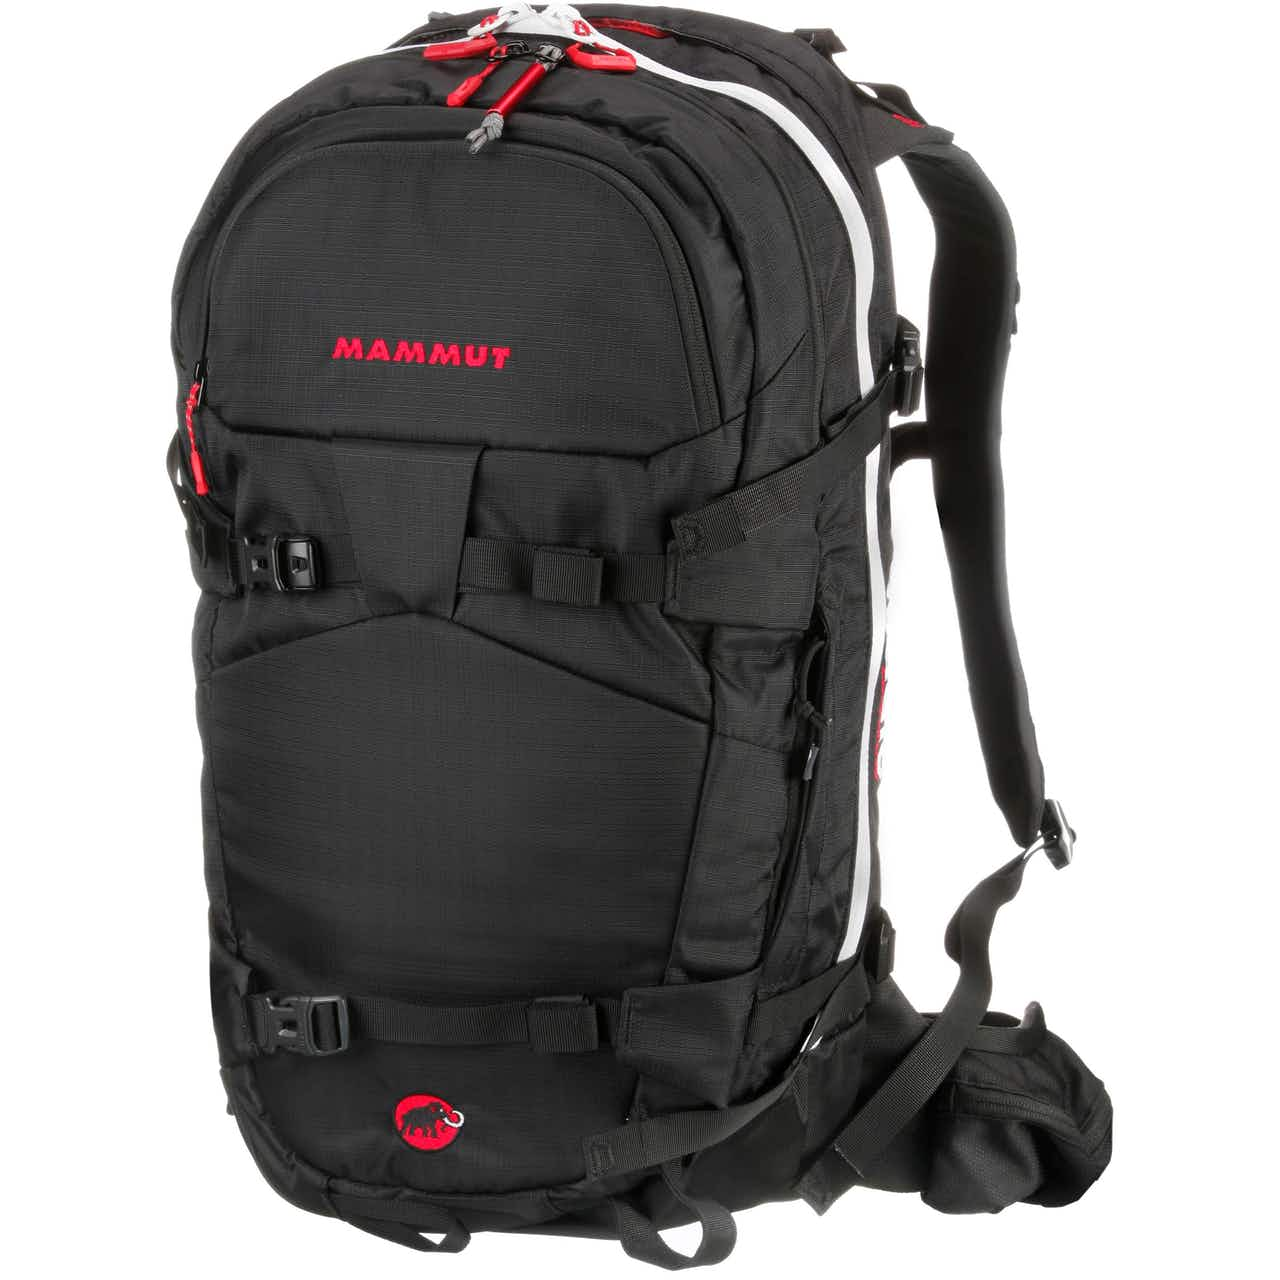 Mammut Ride Removable Airbag 3.0 Lawinenrucksack